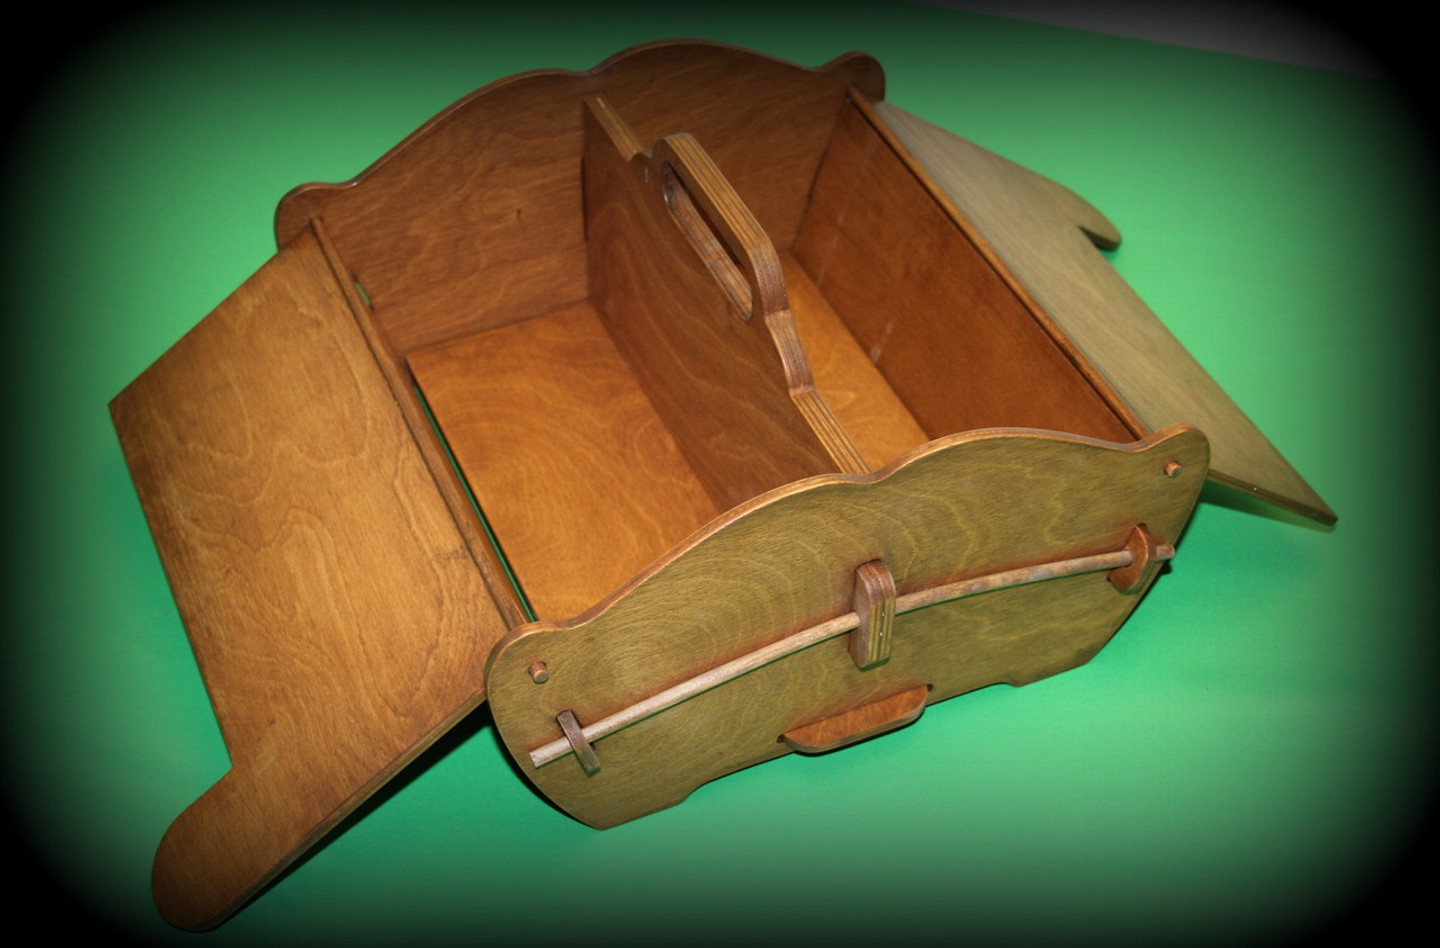 From an age old time tested design, this carry-all caddy has served our own Mom well for over 50 years! Dad made her one for a sewing box when we were just kids! Her was painted white, and has endured to today so that we could adopt the design and offer it to you for any number of purposes!